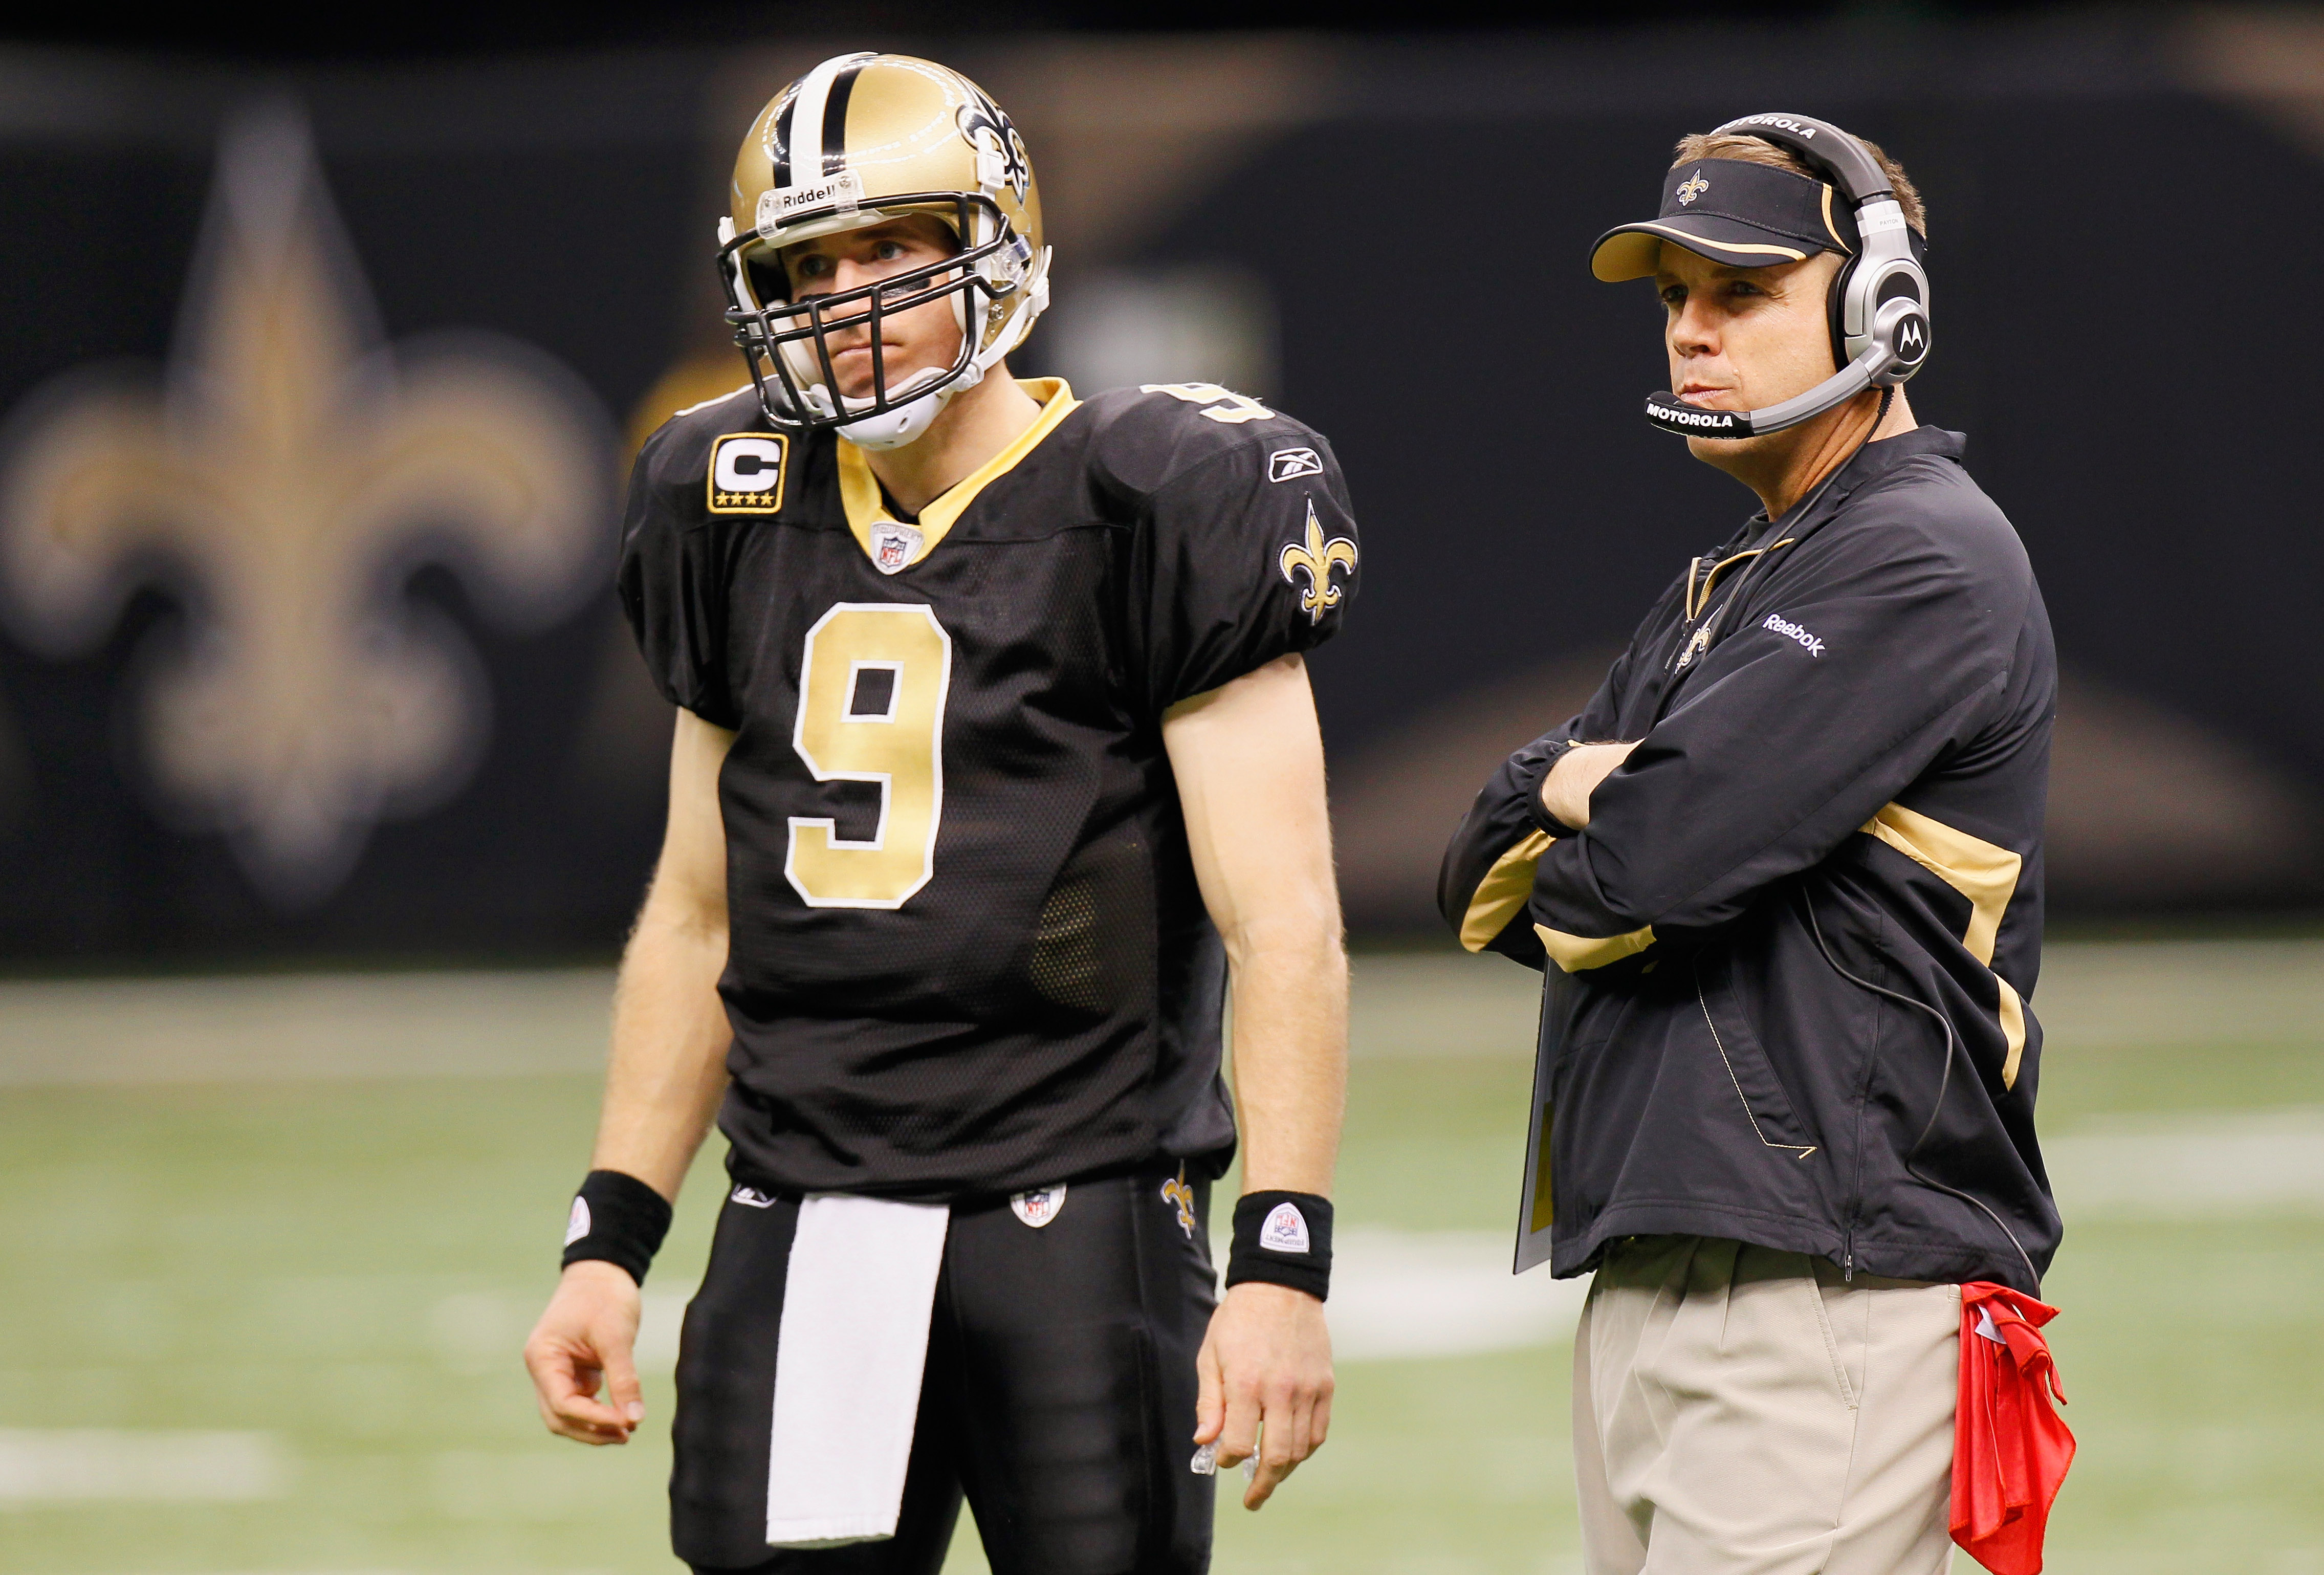 NEW ORLEANS - NOVEMBER 21:  Quarterback Drew Brees #9 and head coach Sean Payton of the New Orleans Saints wait for the call from a review against the Seattle Seahawks at Louisiana Superdome on November 21, 2010 in New Orleans, Louisiana.  (Photo by Kevin